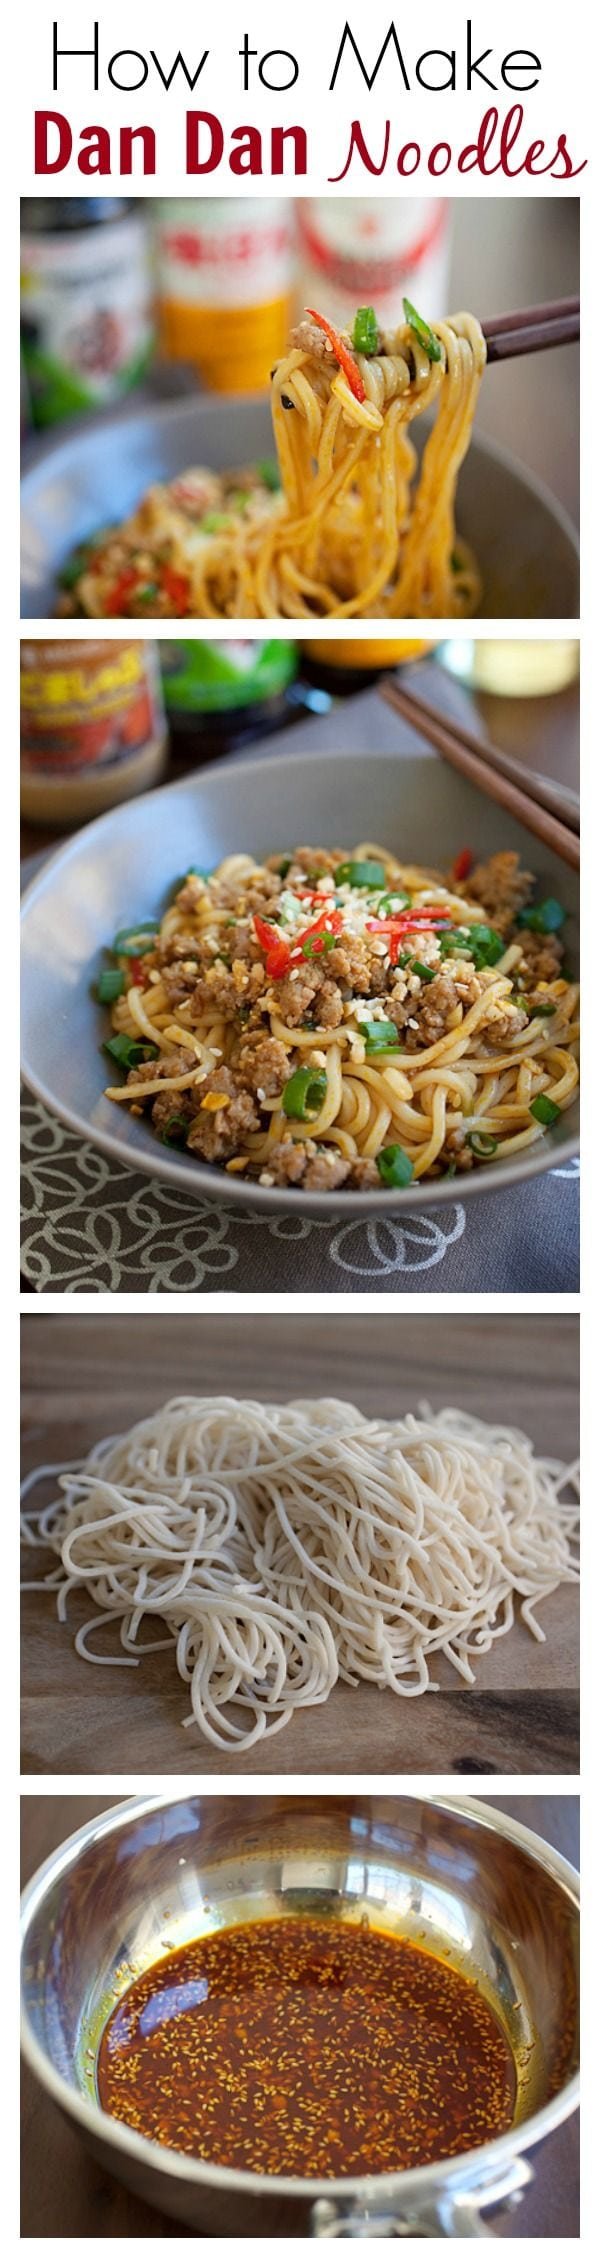 How to Make Sichuan Dan Dan Noodles. Dan Dan noodles are super delicious - spicy, sour and savory. Check out the EASY recipe | rasamalaysia.com